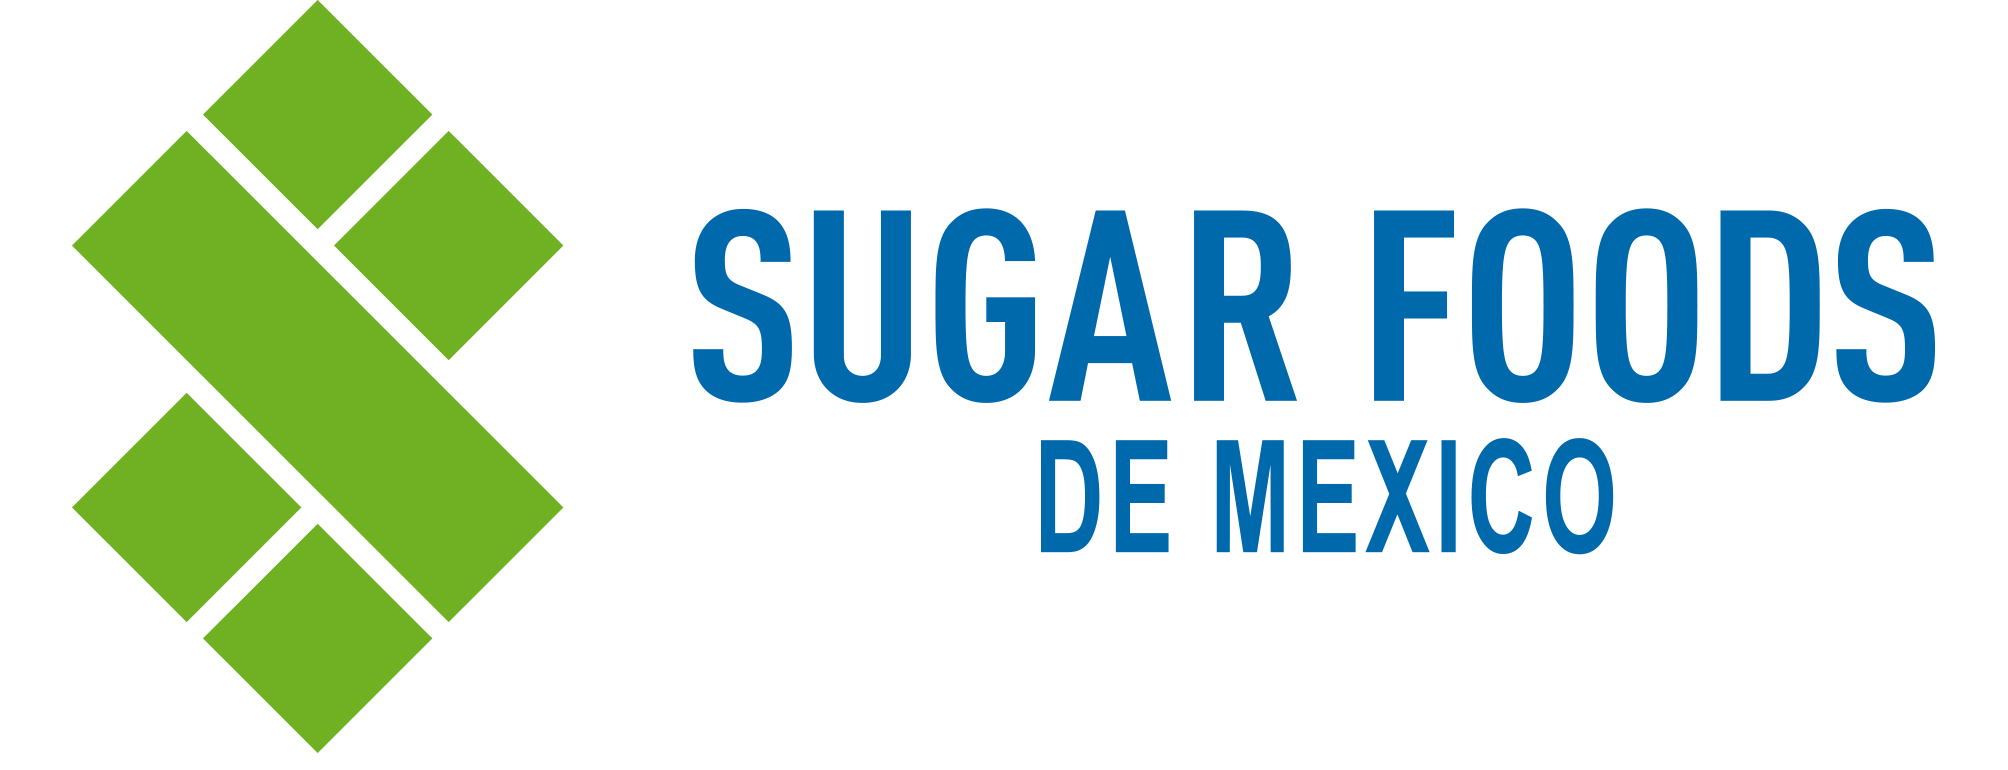 Sugar Foods De Mexico